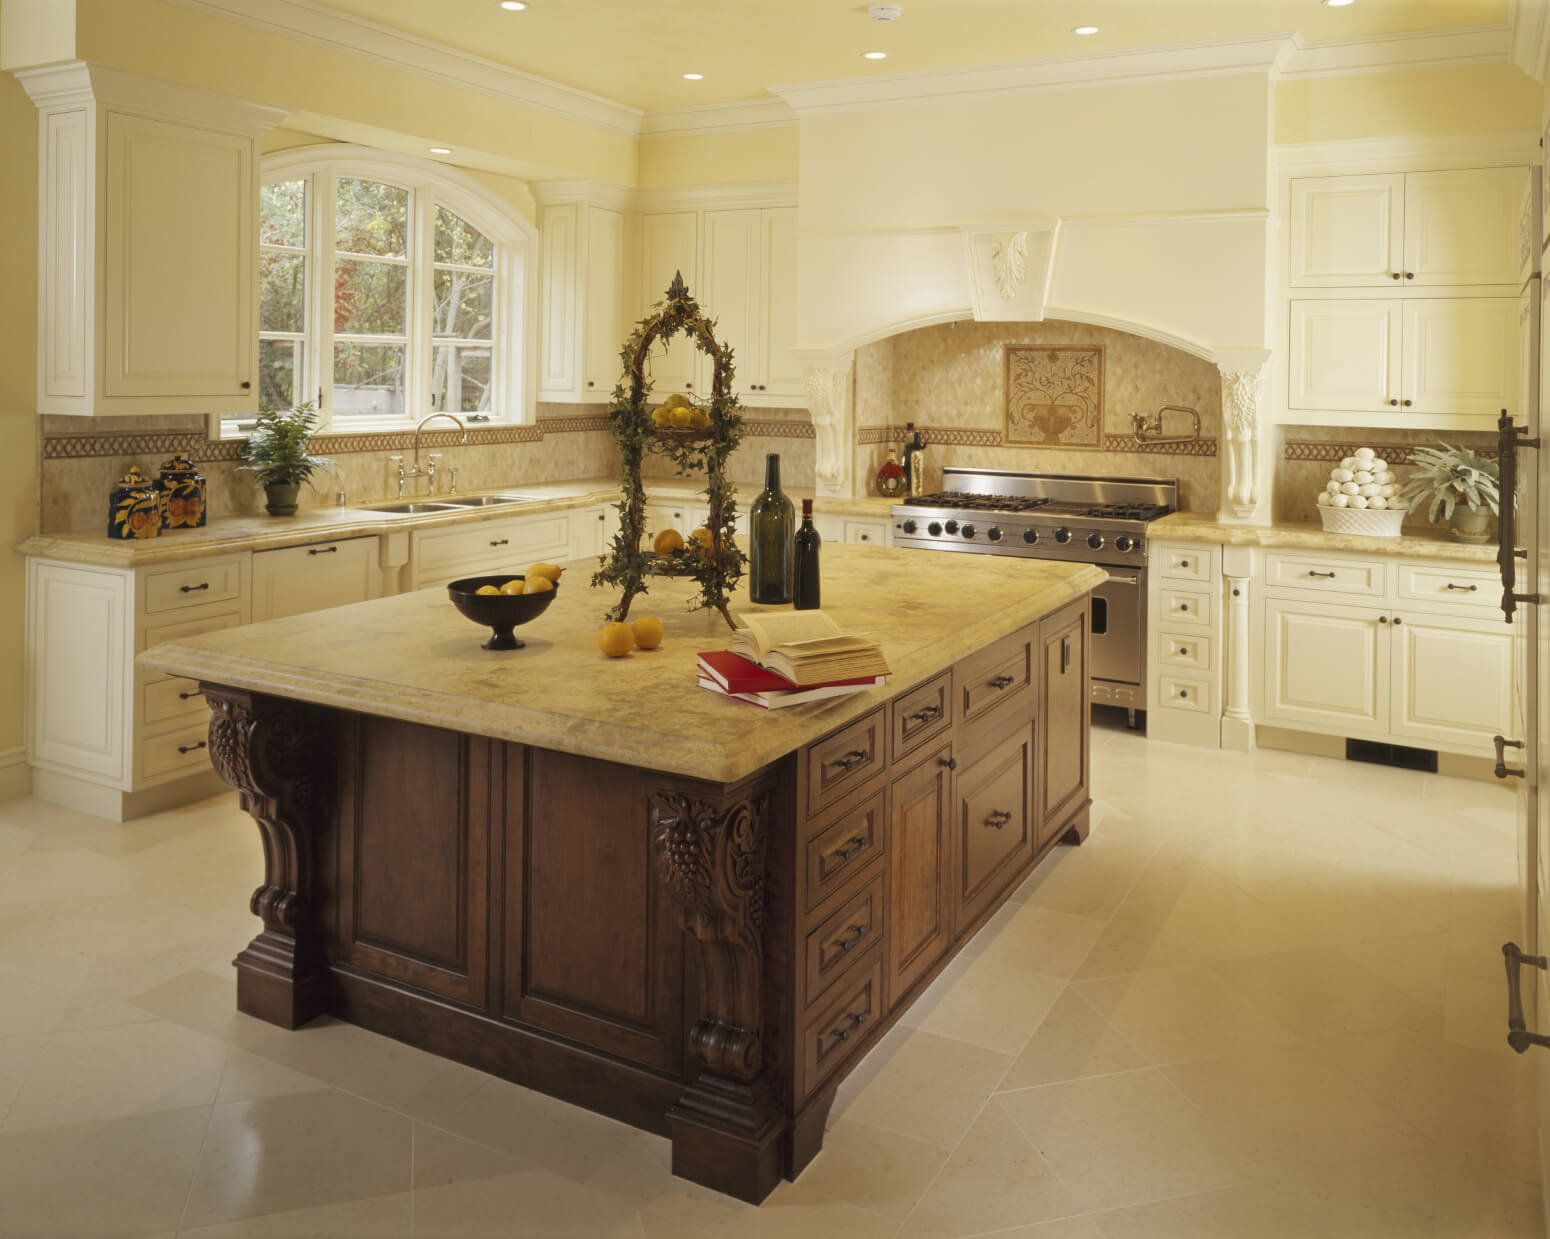 48 luxury dream kitchen designs worth every penny photos for Kitchen ideas island